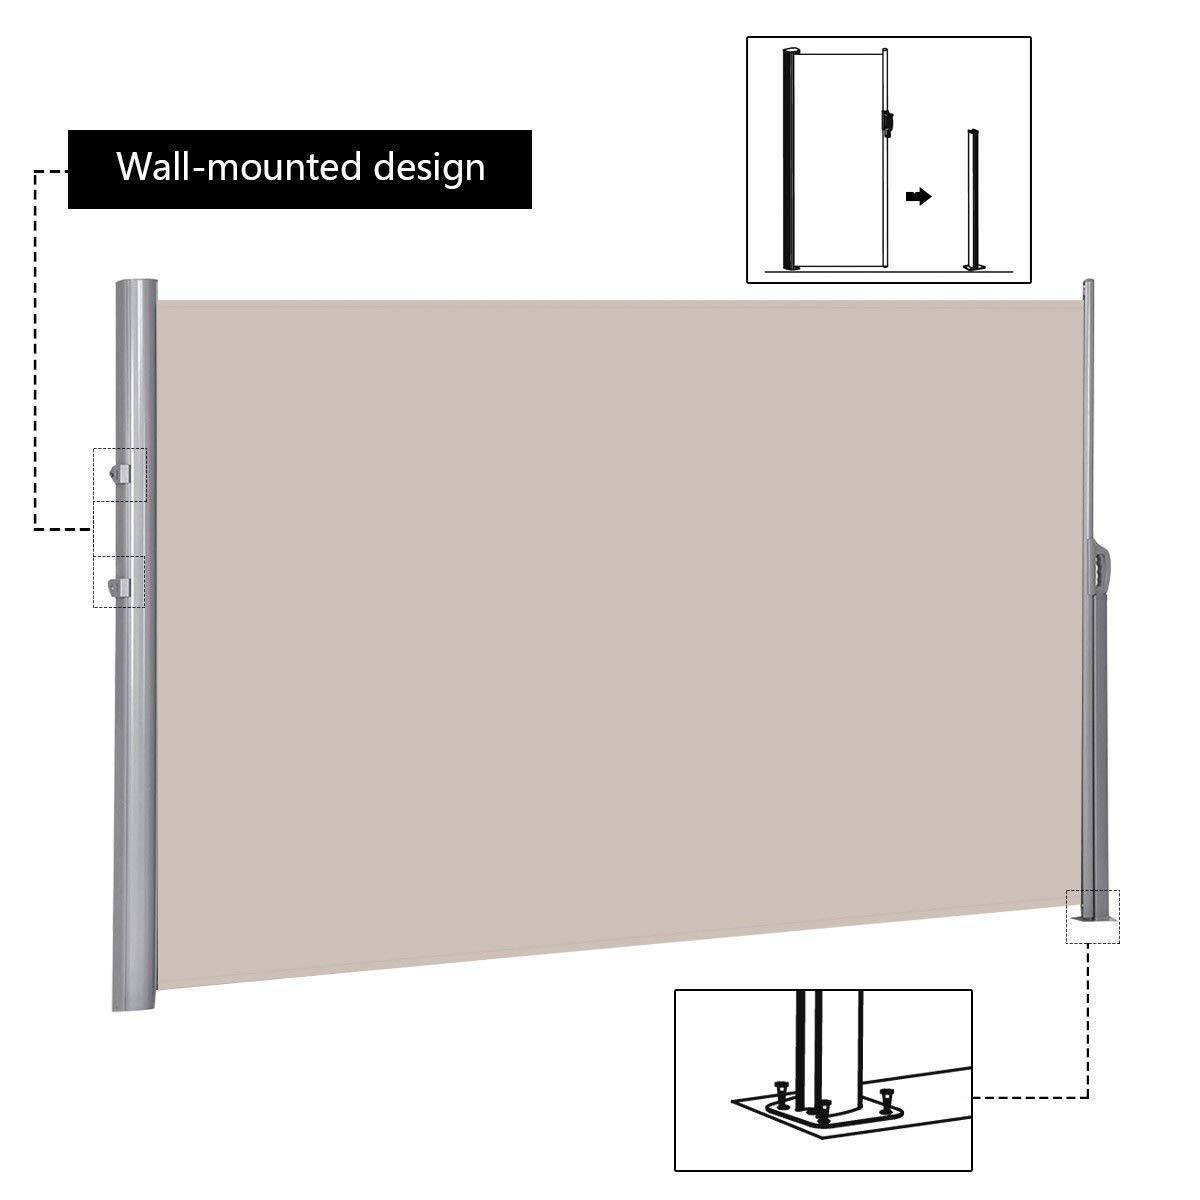 Tangkula Outdoor Patio Retractable Folding Side Screen Awning Waterproof Sun Shade Wind Screen Privacy Divider (118.5'' x 71'', Beige) by Tangkula (Image #4)